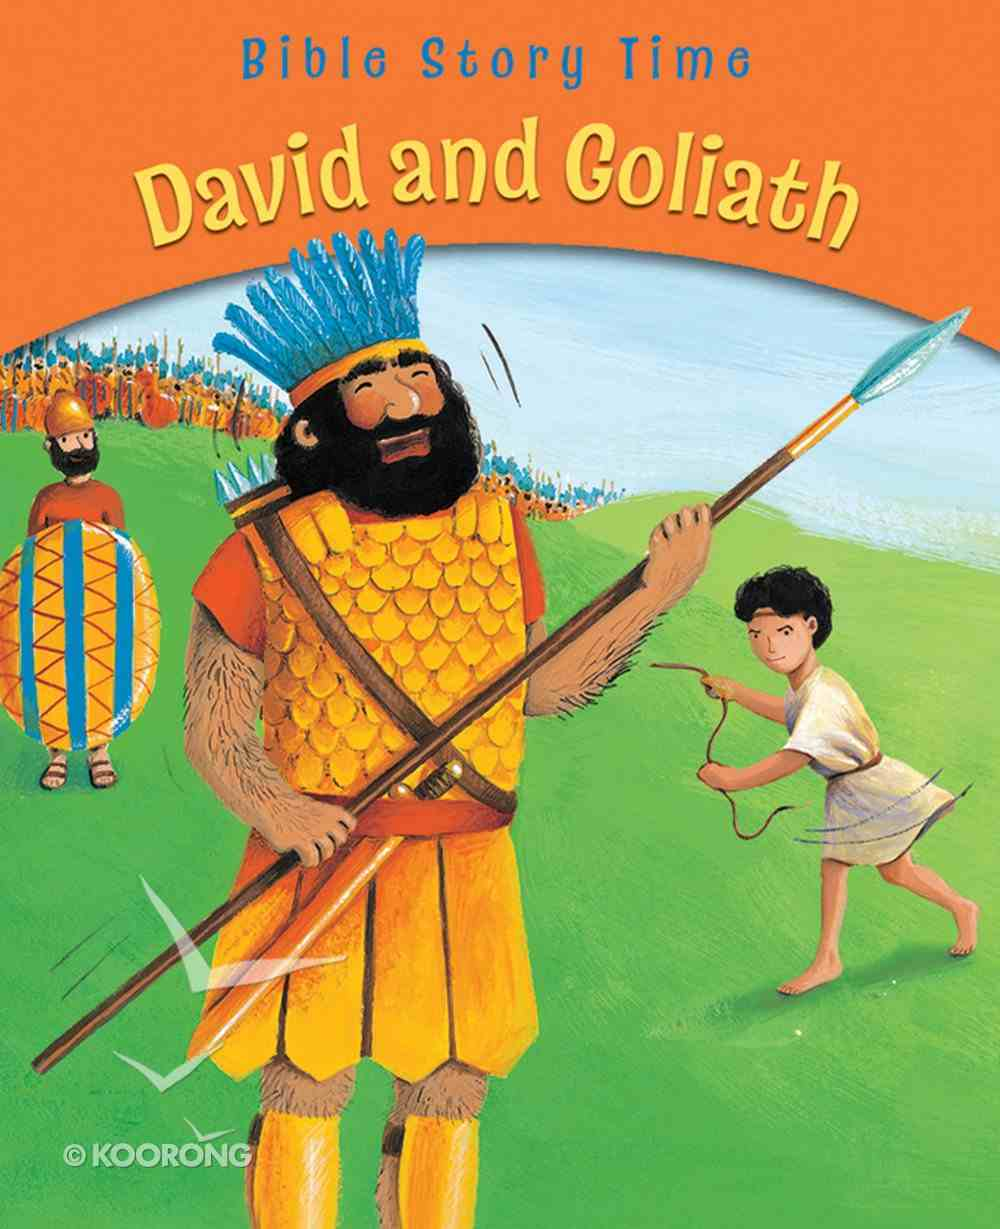 David and Goliath (Bible Story Time Old Testament Series) eBook